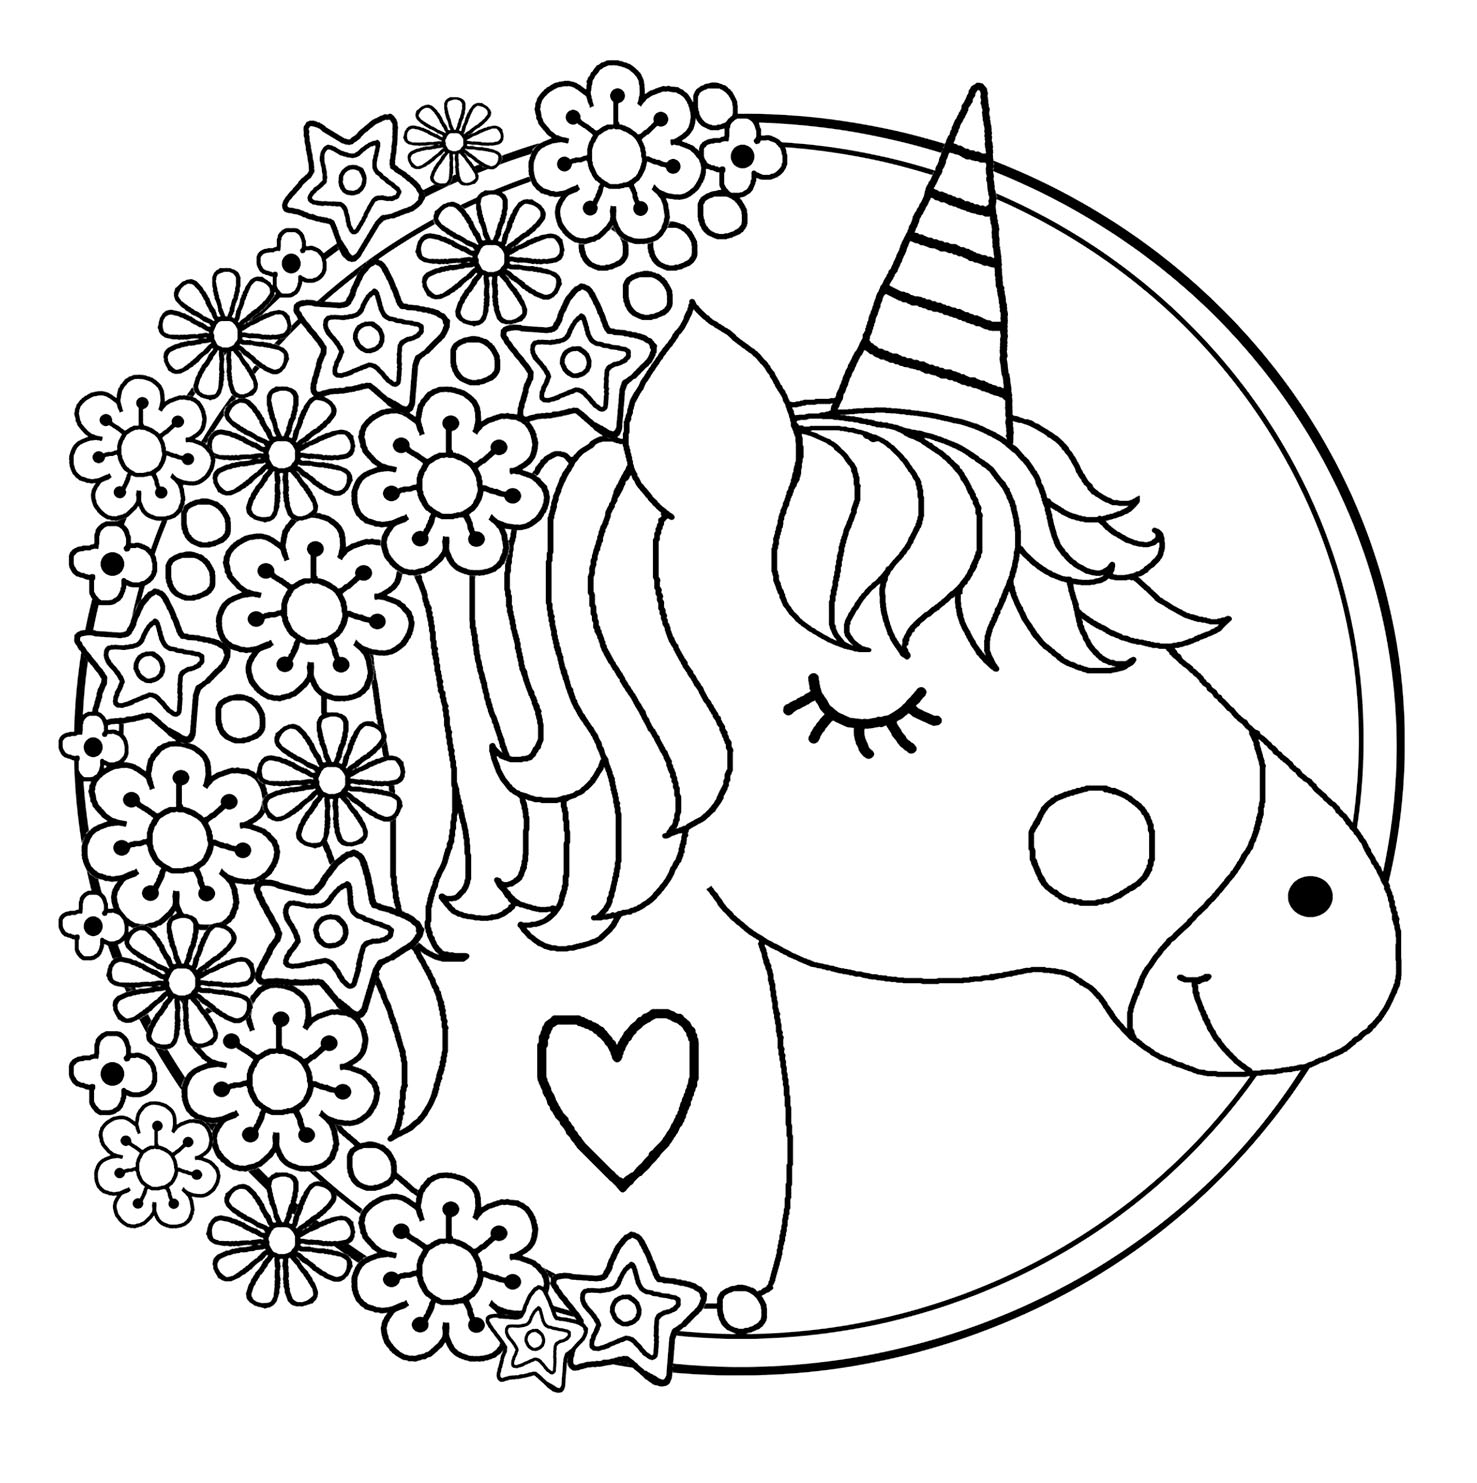 unicorn printables unicorn colouring a4 printable coloring pages free face unicorn printables